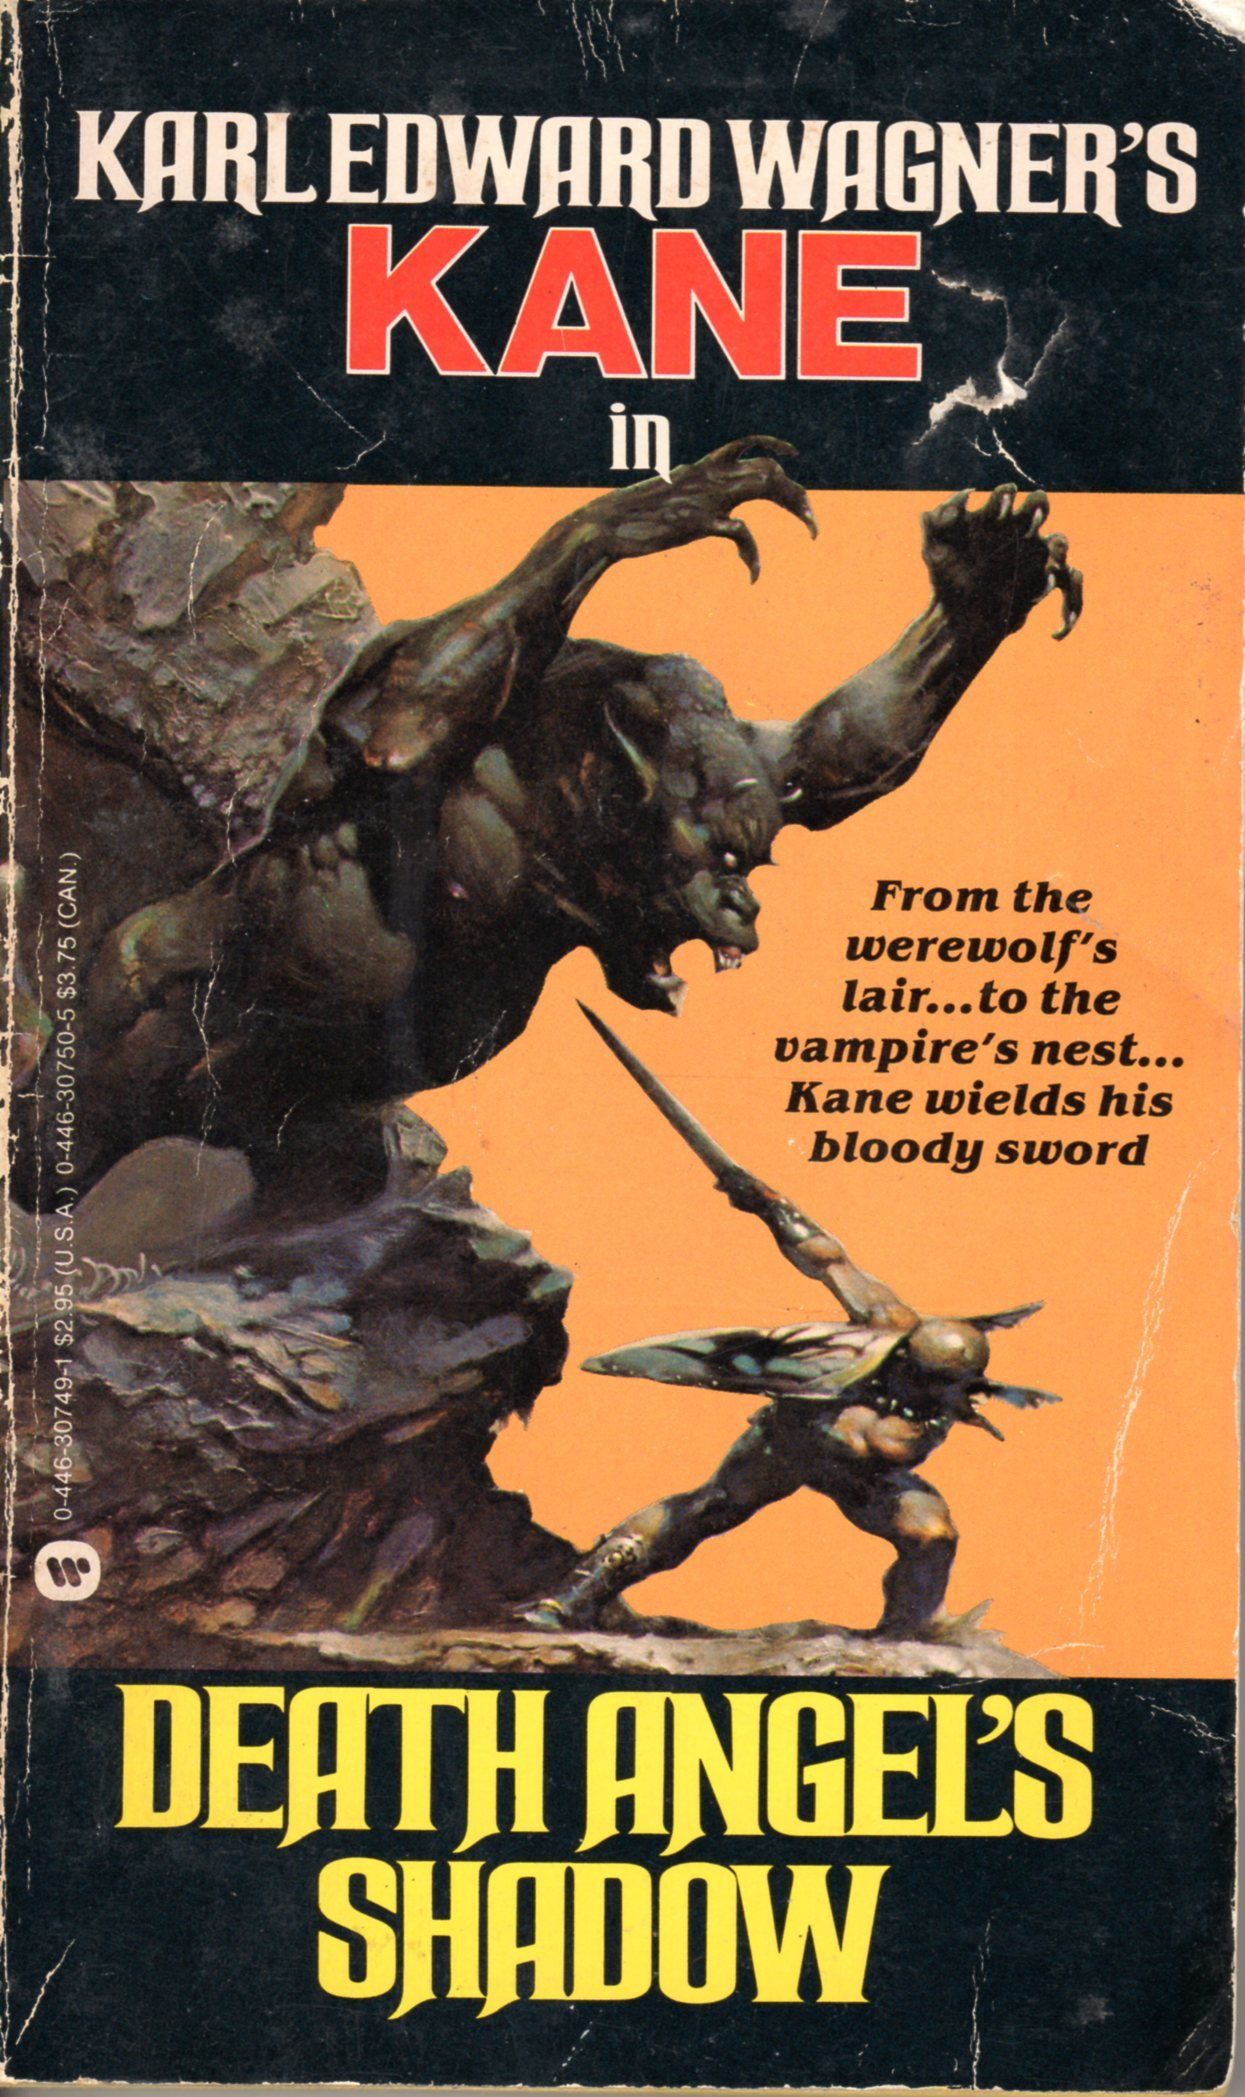 Book Cover Art Gallery : Death angel s shadow karl edward wagner cover by